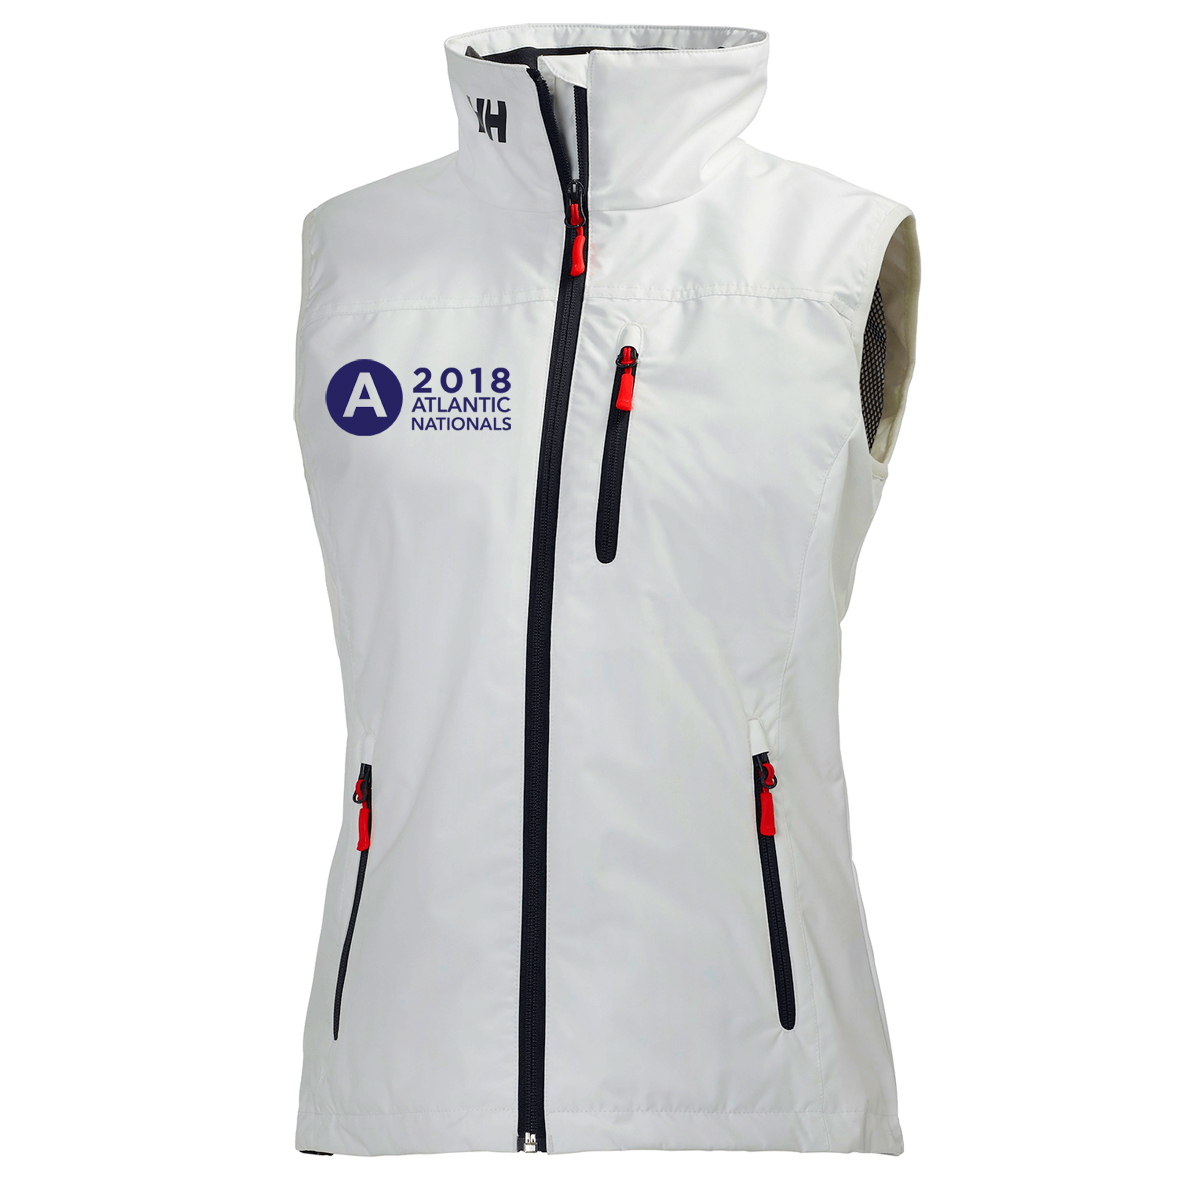 ATLANTIC NATIONALS- W CREW VEST